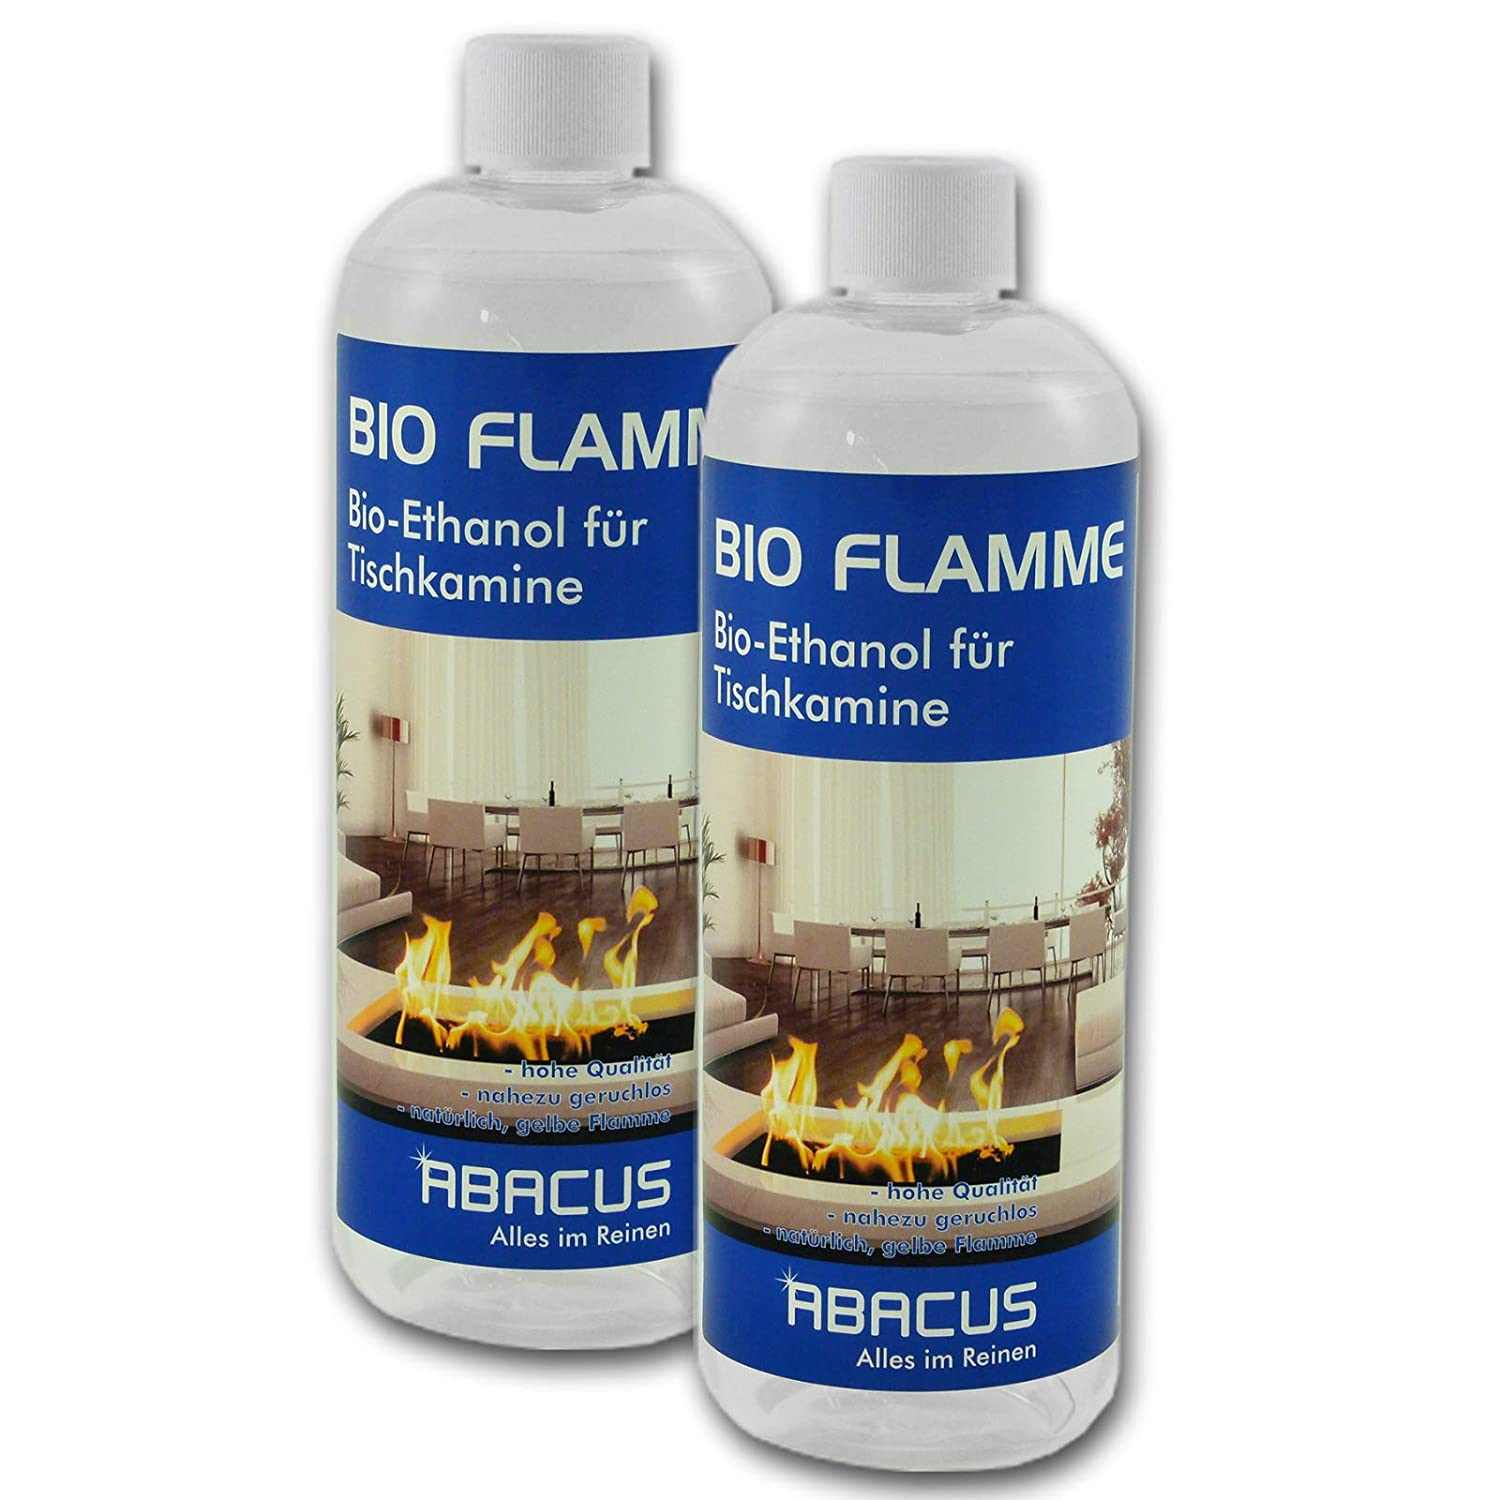 Bio Flame 2X 1000 ml (7070) – Bio Alcohol Fuel Alcohol Burner Alcohol Methylated Spirits Alcohol Lamp Fuel Bio-Ethanol for Tischkamine – Abacus